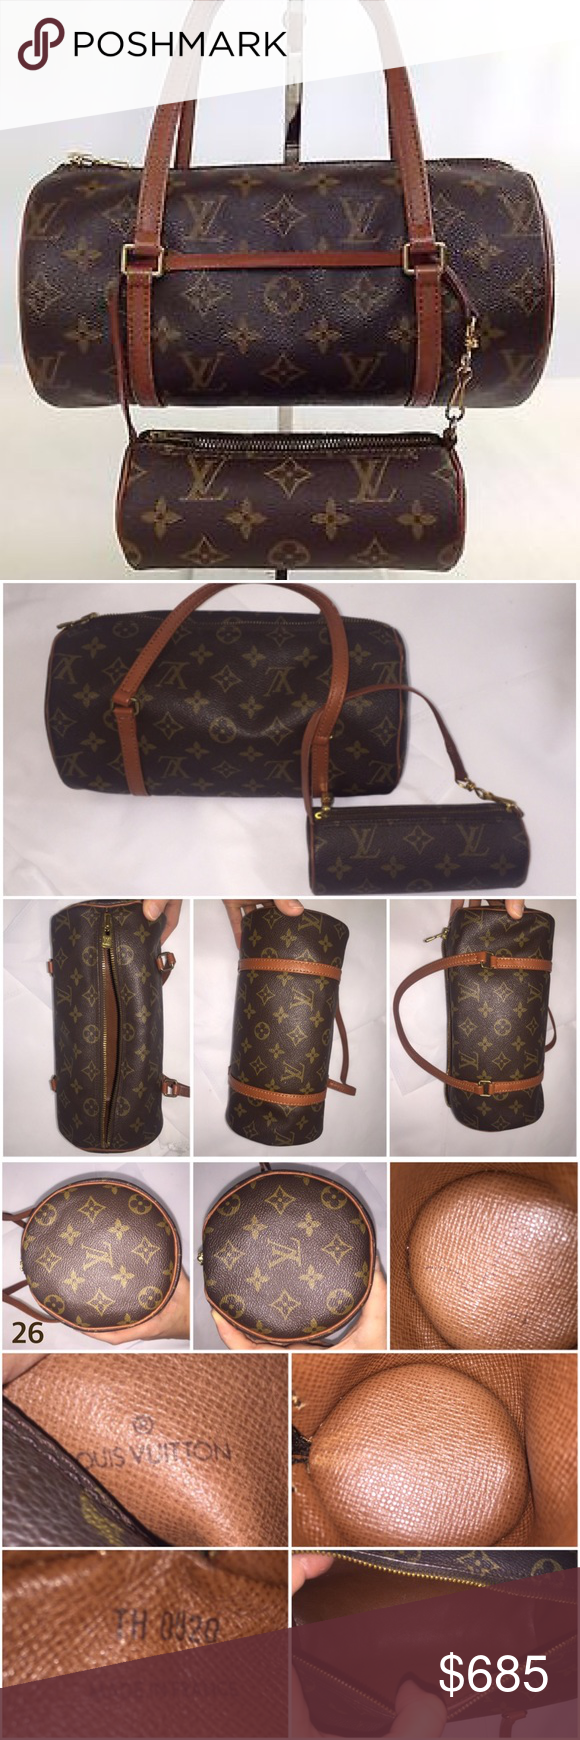 """Authentic Louis Vuitton Papillon 26 w/ mini Louis Vuitton Monogram Papillon 26 w/ mini Papillon.   Brown and tan monogram coated canvas Louis Vuitton Papillon 26 w/ brass hardware, brown leather trim, dual flat top handles, brown leather lining and zip closure at top. Mini bag's handle detaches to clip around this Papillon 26, or to whatever your heart desires.    Exterior and interior of BOTH bags are in EXCELLENT condition!   Measurements: Handle Drop 3.5"""", Height 6.5"""", Width 10"""", Depth 5""""…"""